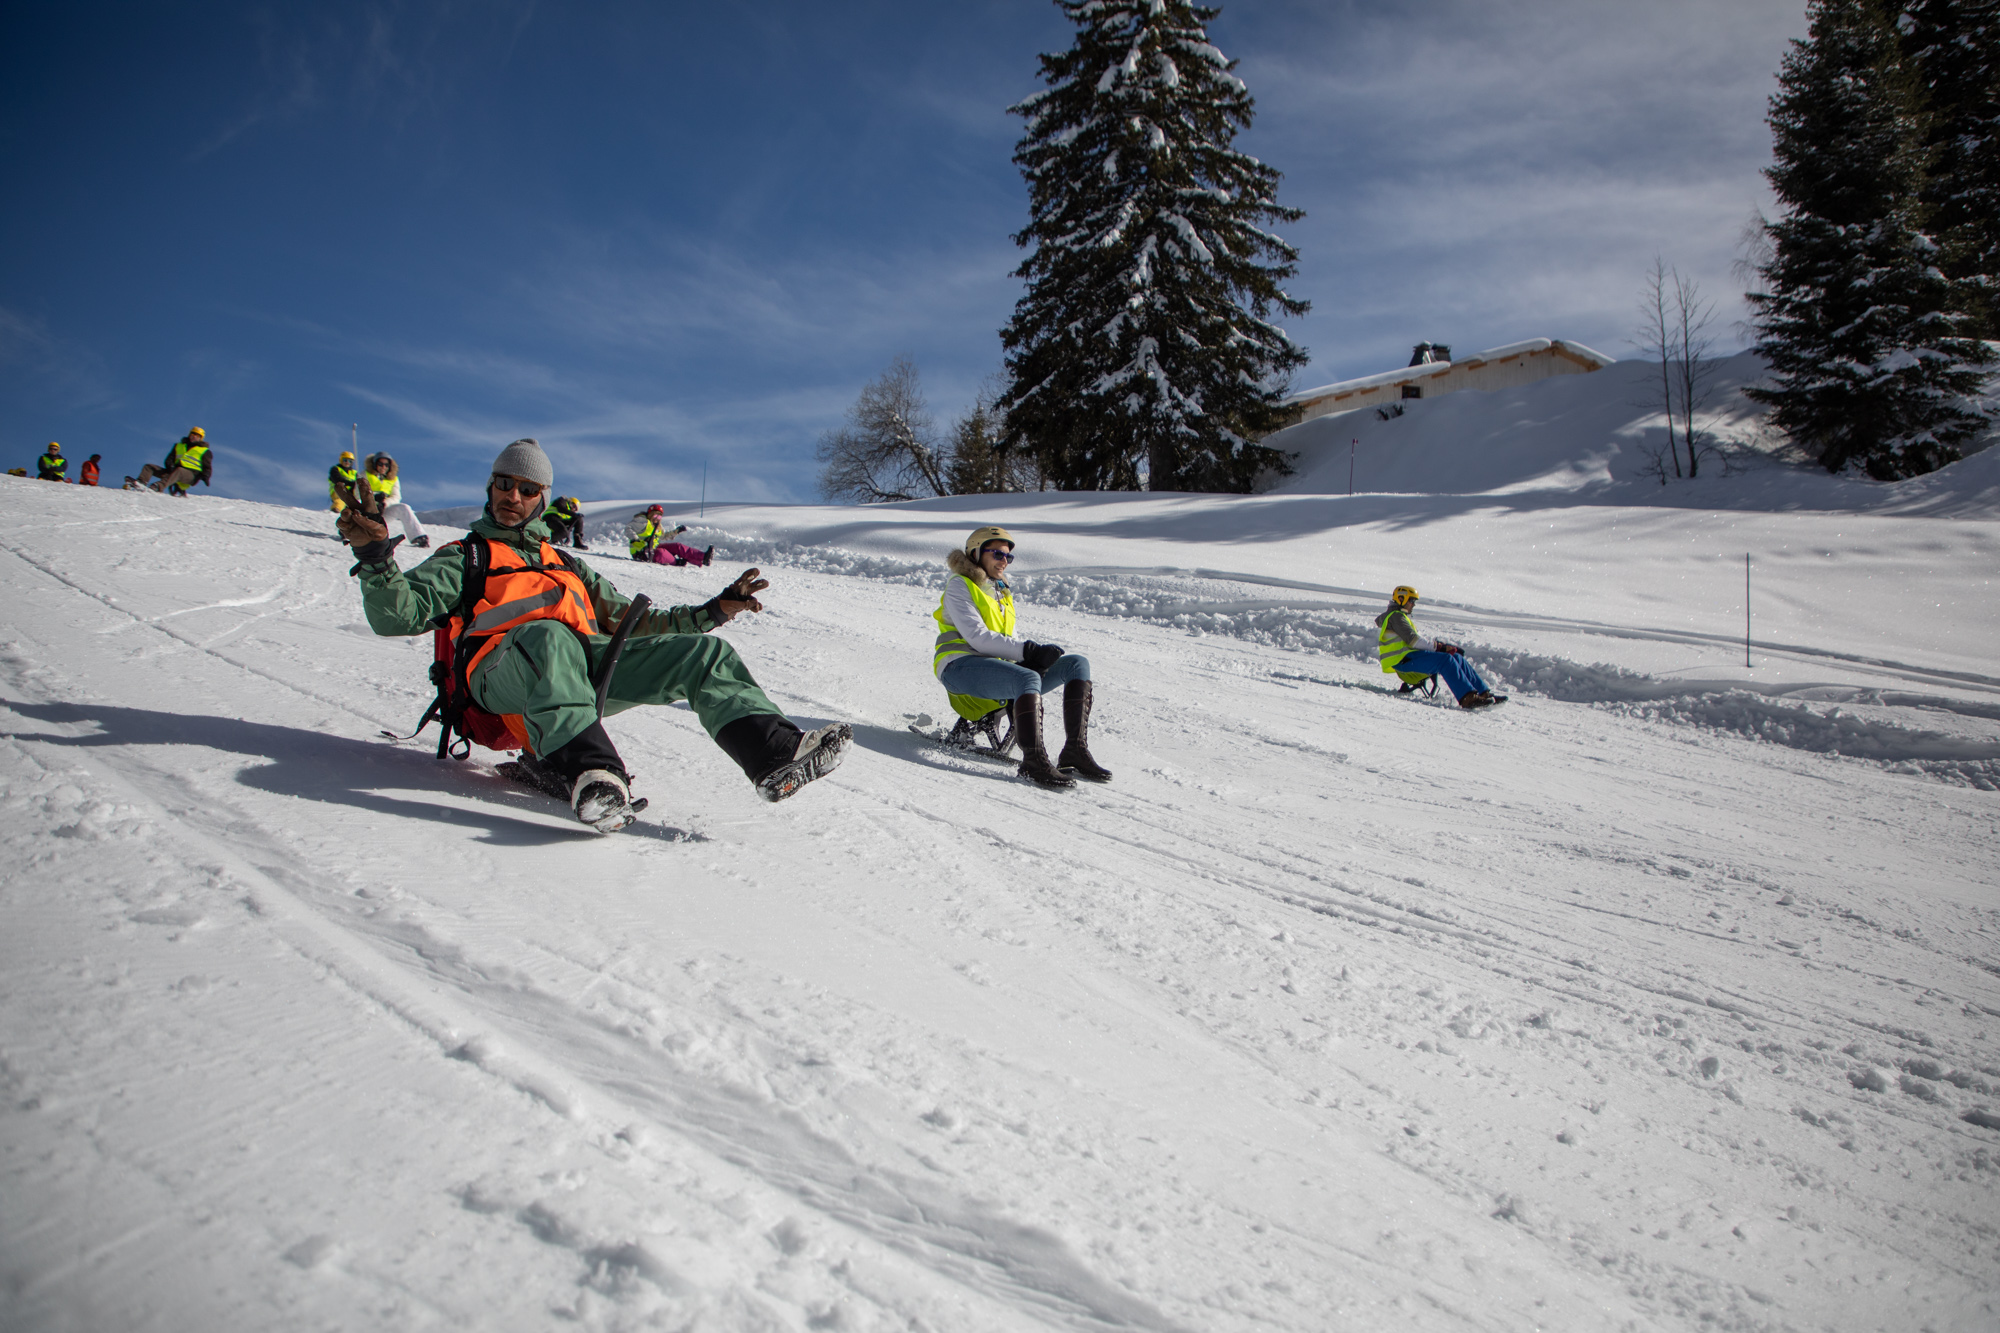 Break_The_Ice_LaClusaz_2019_web-7165.jpg